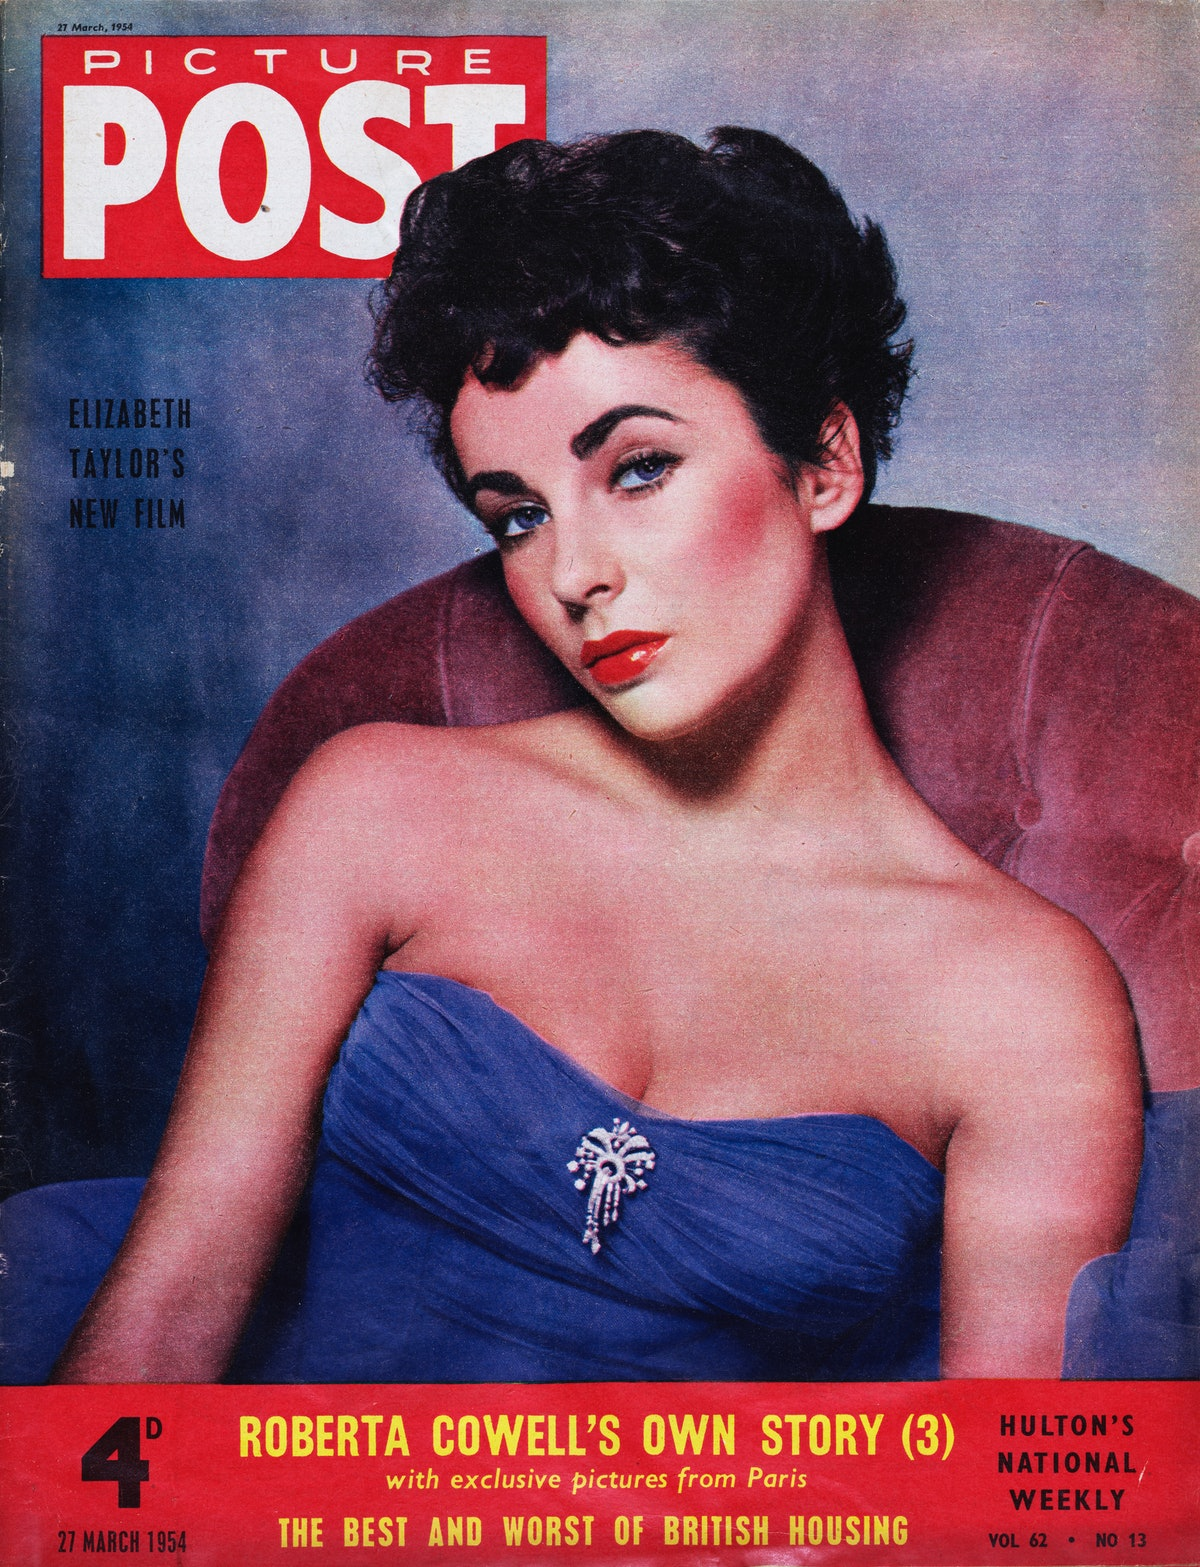 Elizabeth Taylor defines the diva arch brow of the '50s.